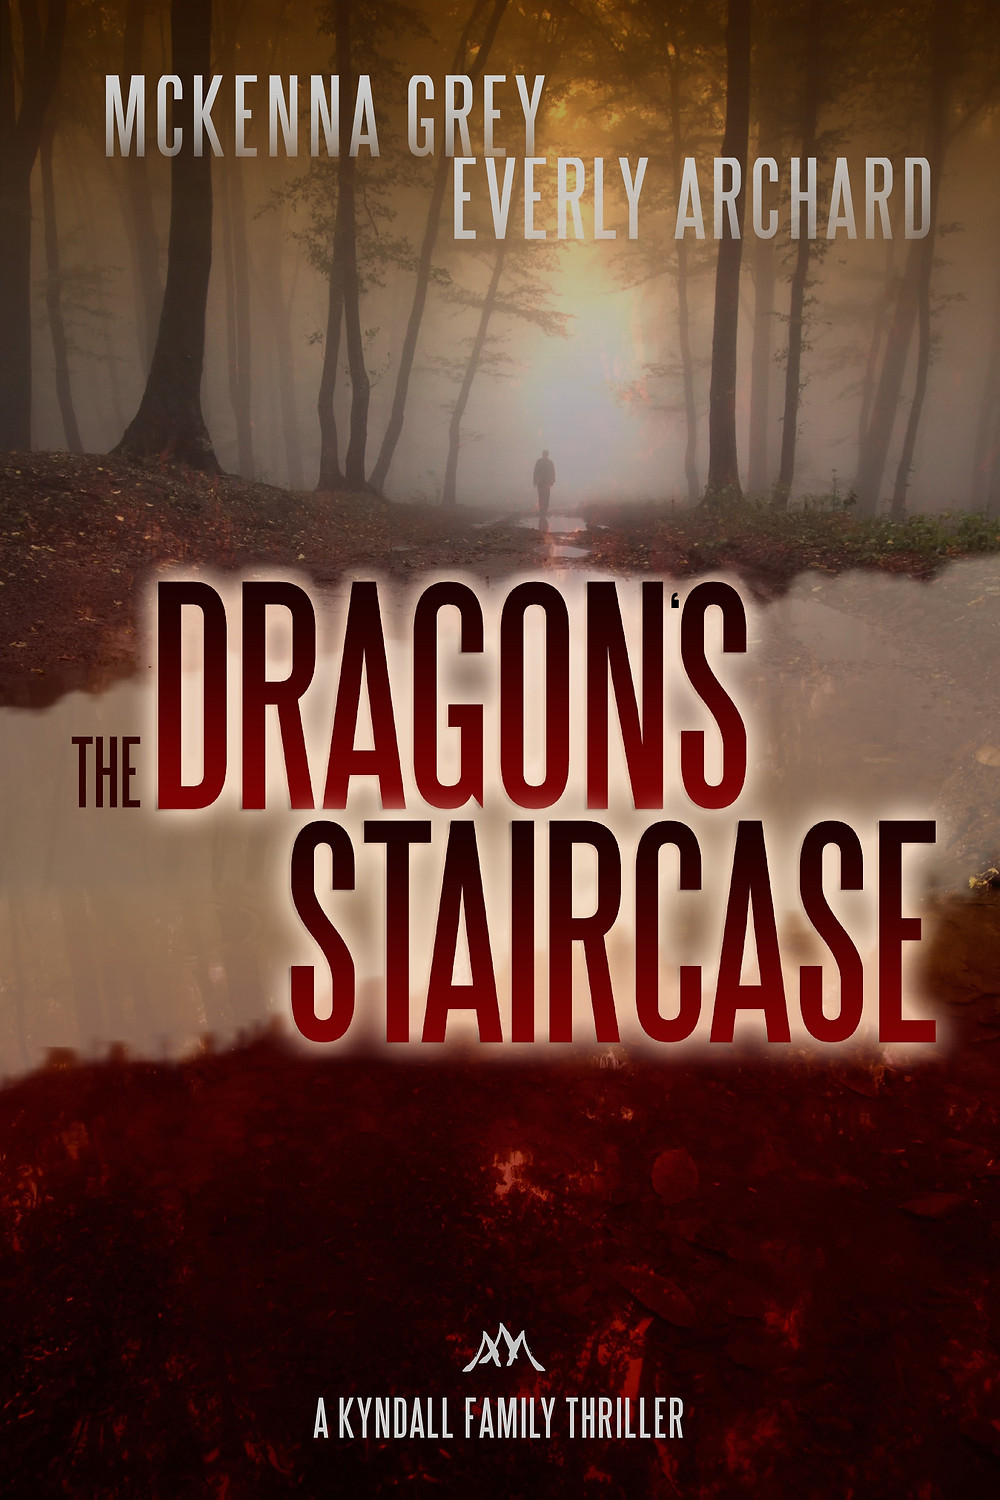 The Dragon's Staircase by McKenna Grey - romantic suspense